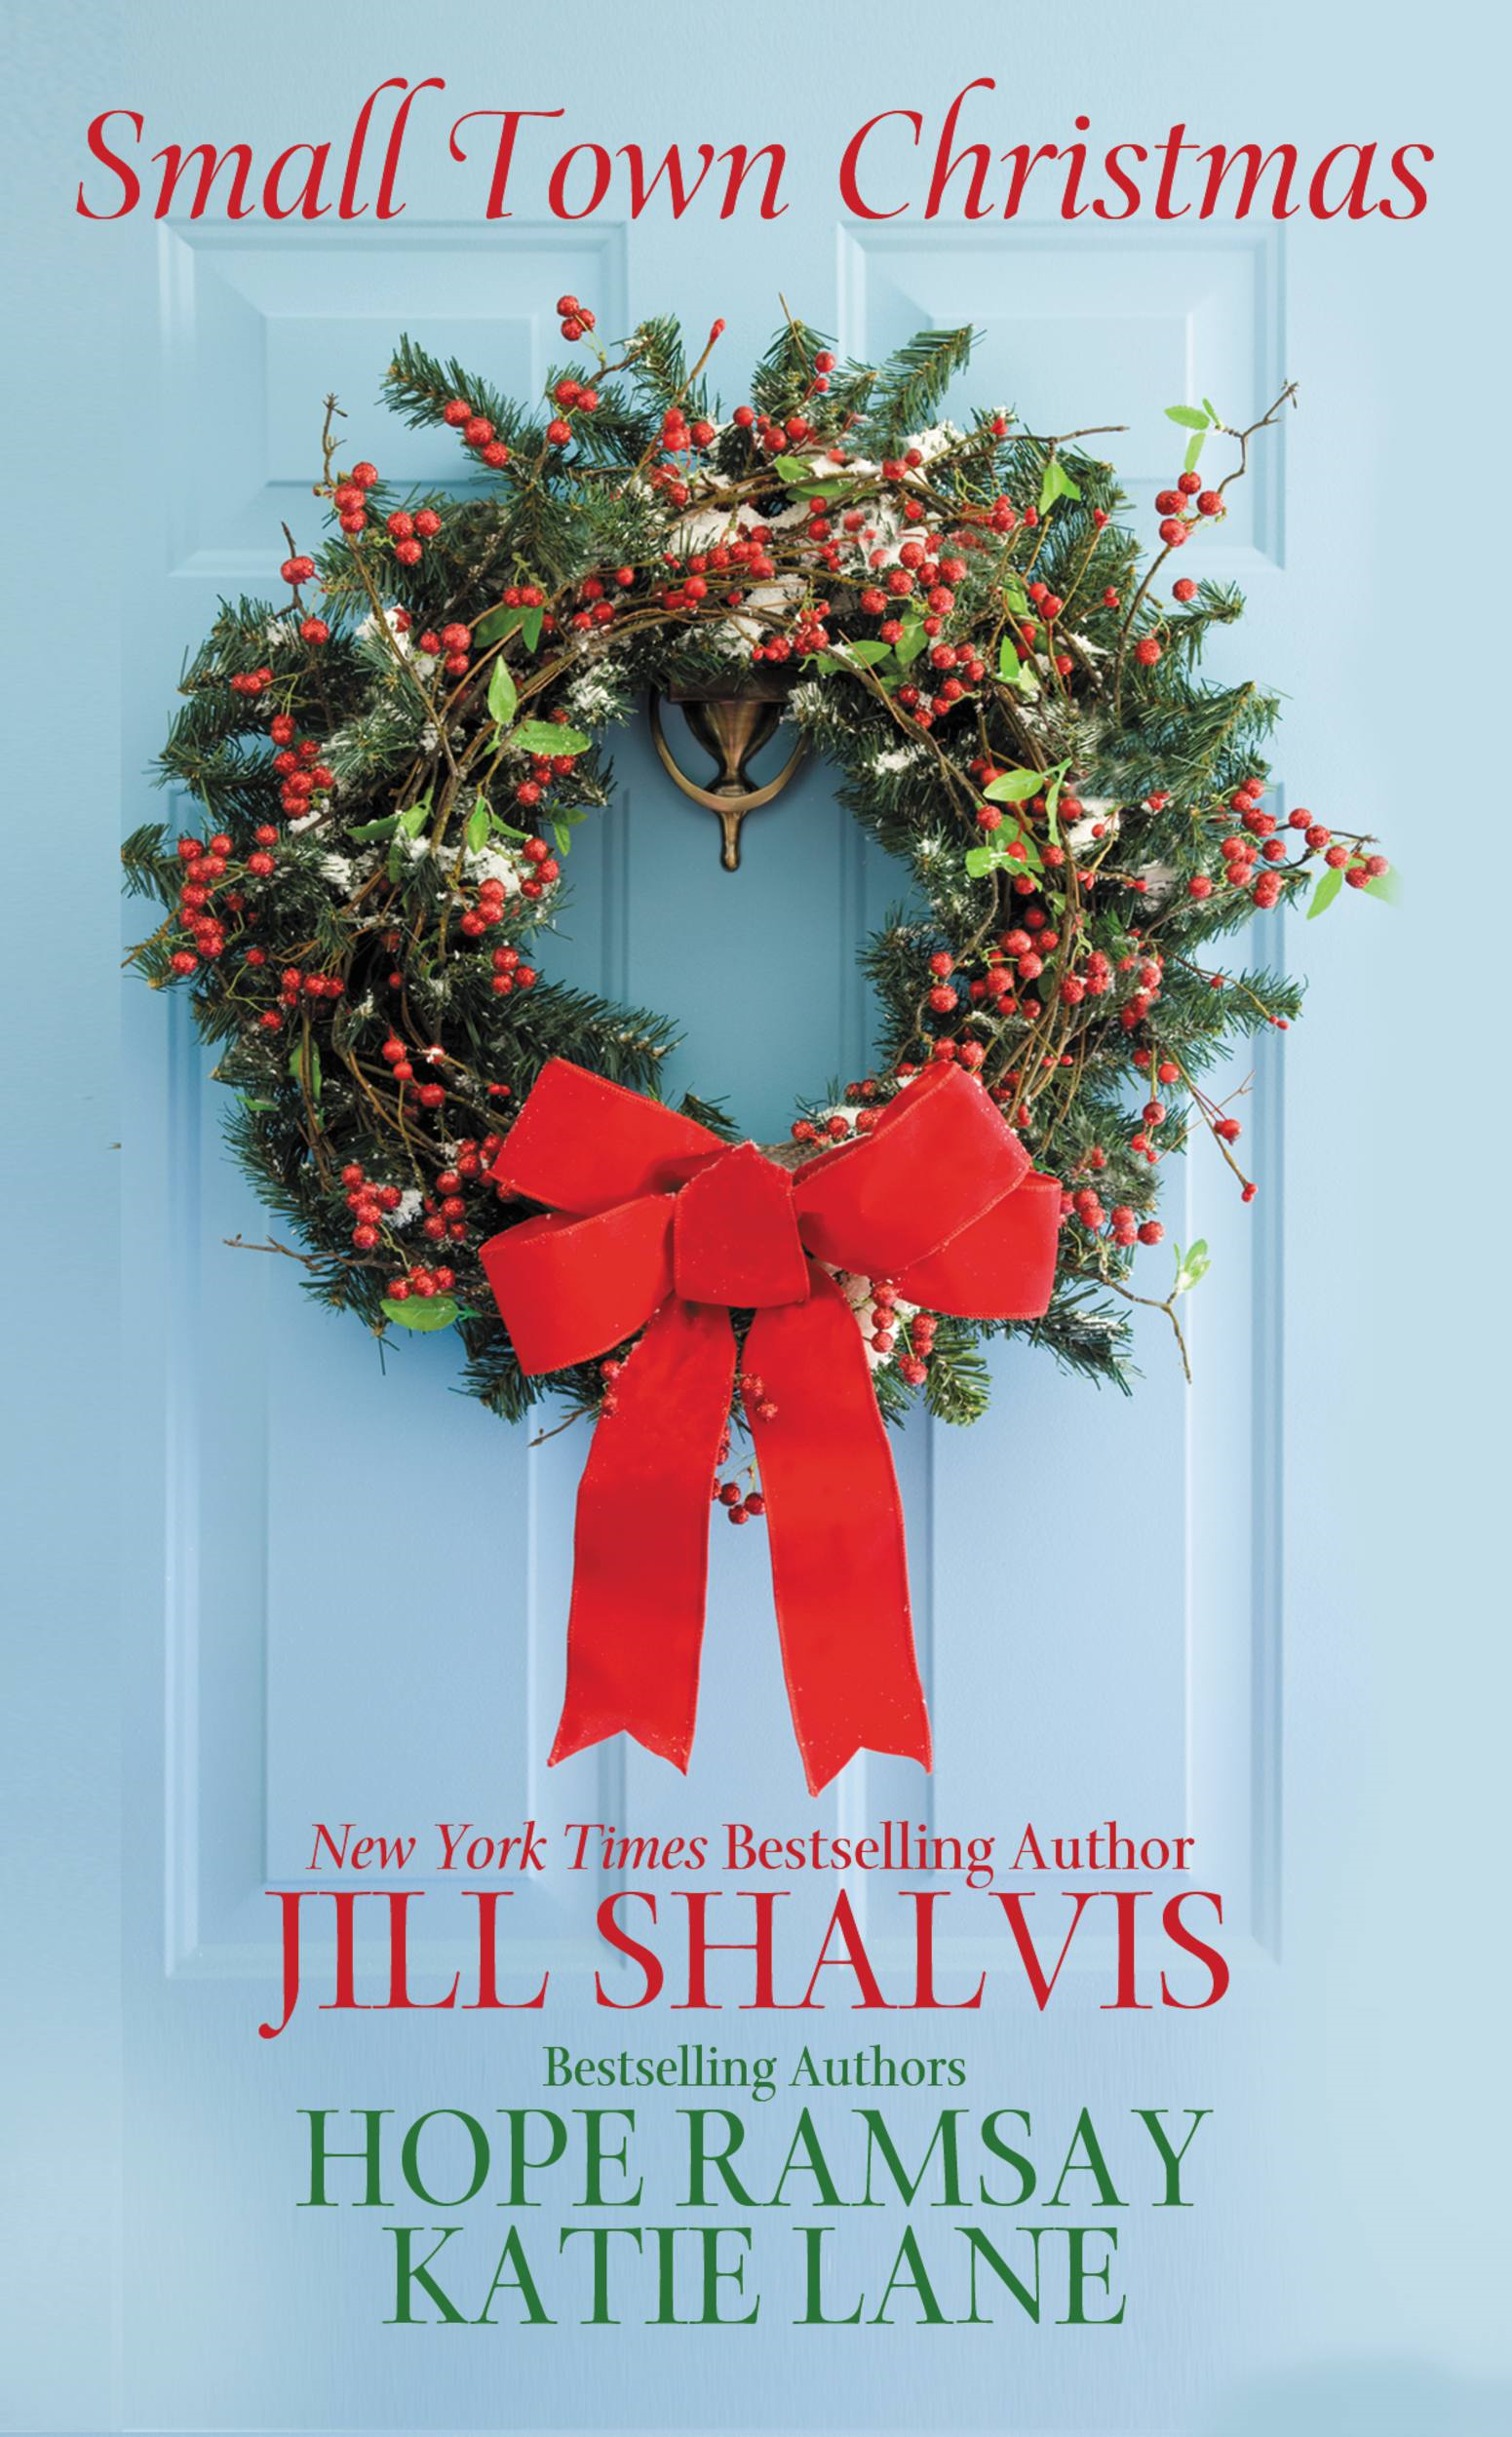 Small Town Christmas By: Hope Ramsay,Jill Shalvis,Katie Lane